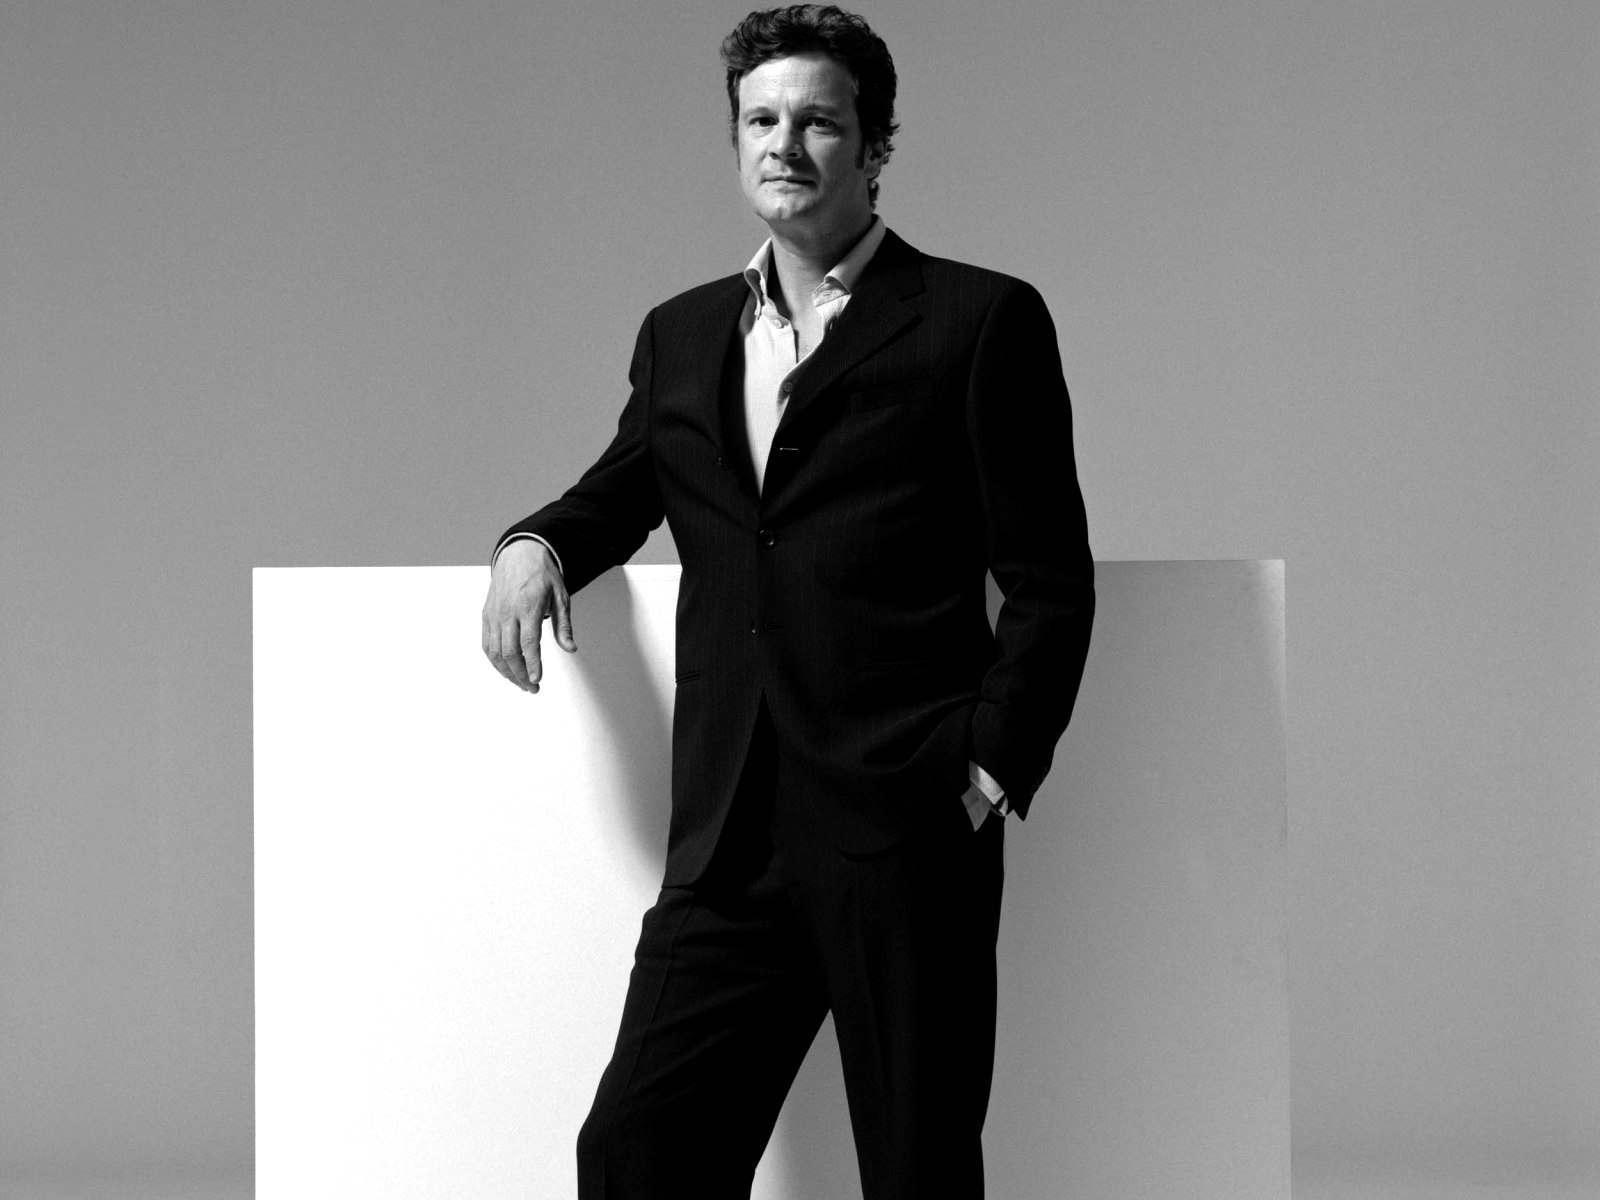 1600x1200 - Colin Firth Wallpapers 2